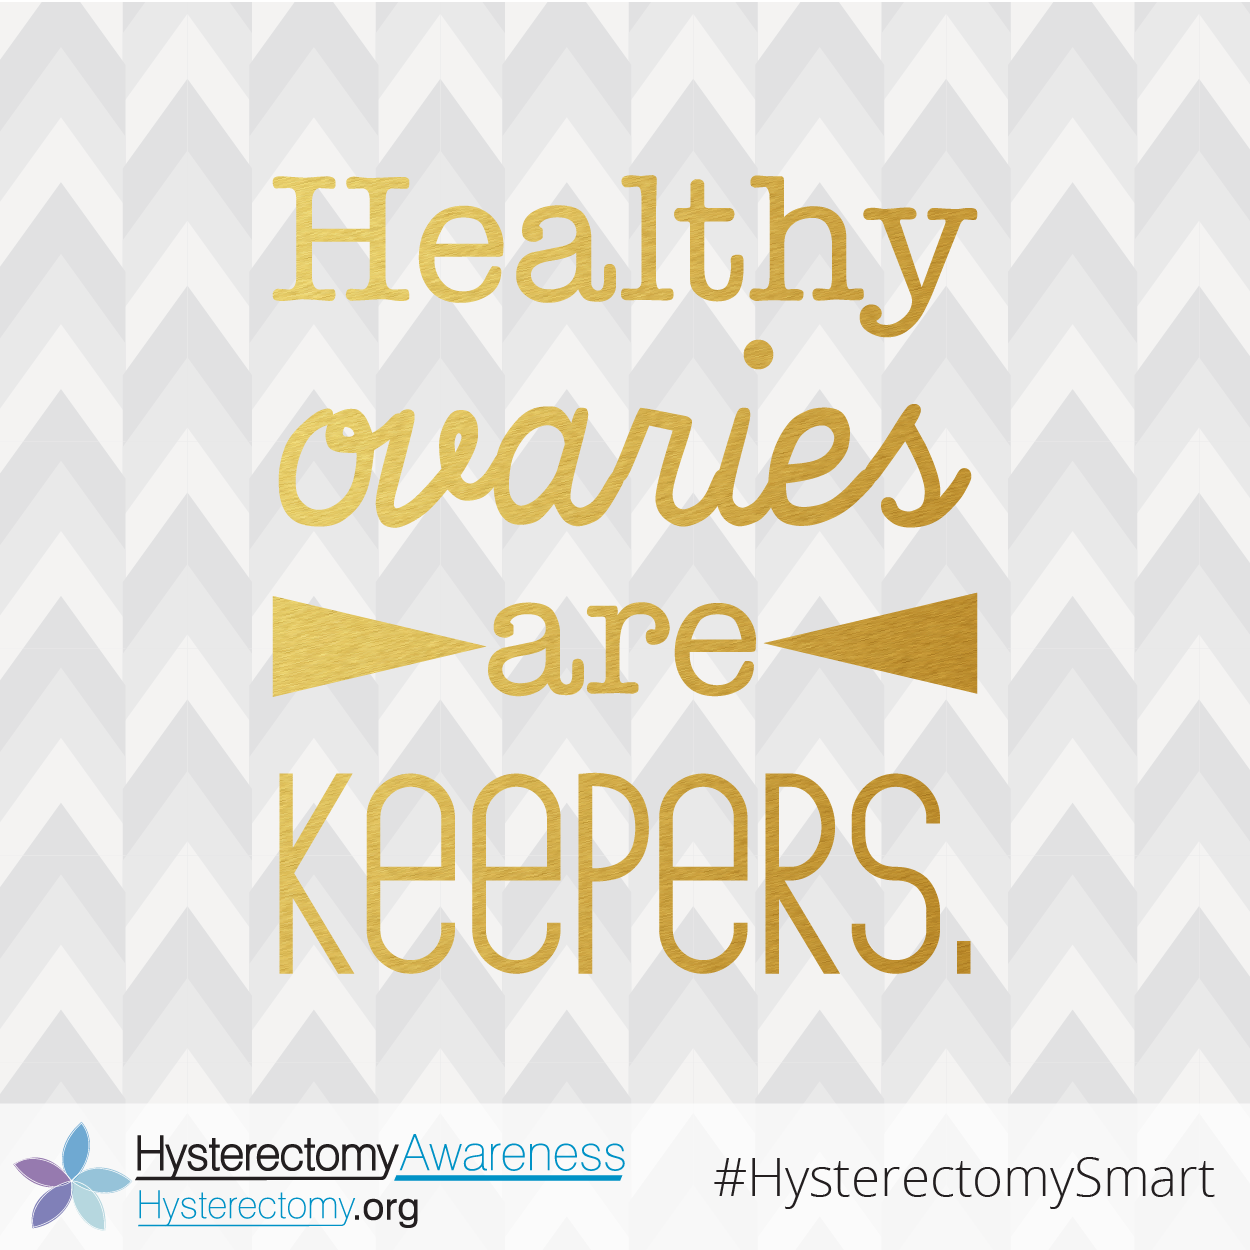 Healthy Ovaries are Keepers #HysterectomySmart